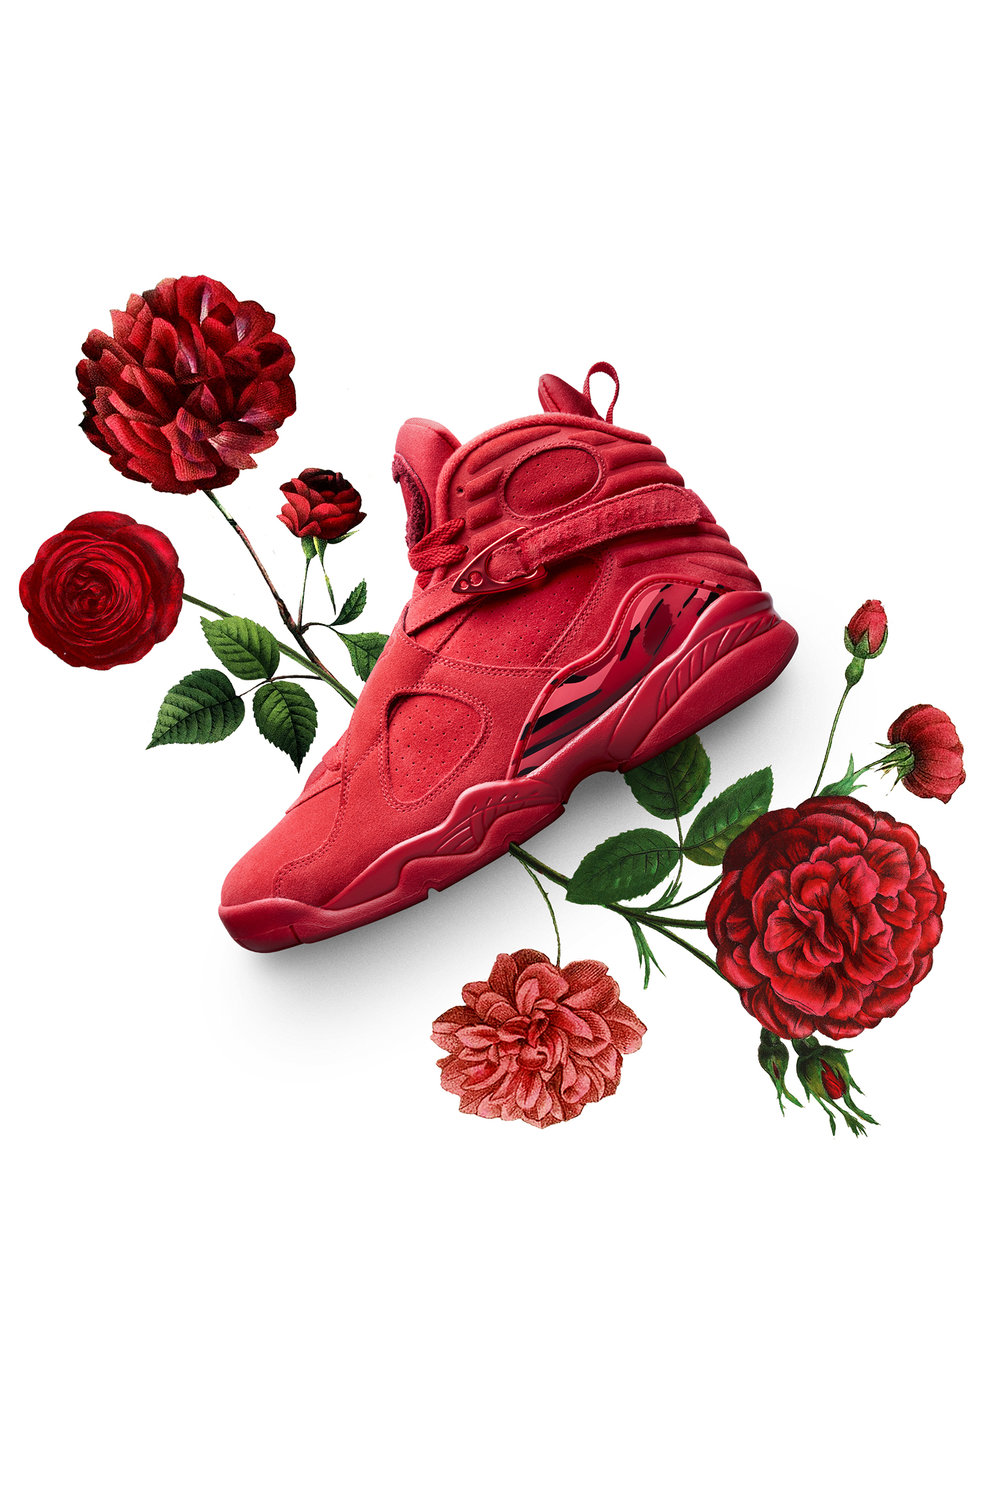 The latest Air Jordan VIII arrives just in time for Valentine's Day. It has more red than a bouquet of roses and a rich suede construction that brings out the silhouette's softer side. Featuring special graphics and a message to mark the occasion, it celebrates the day of love in style.